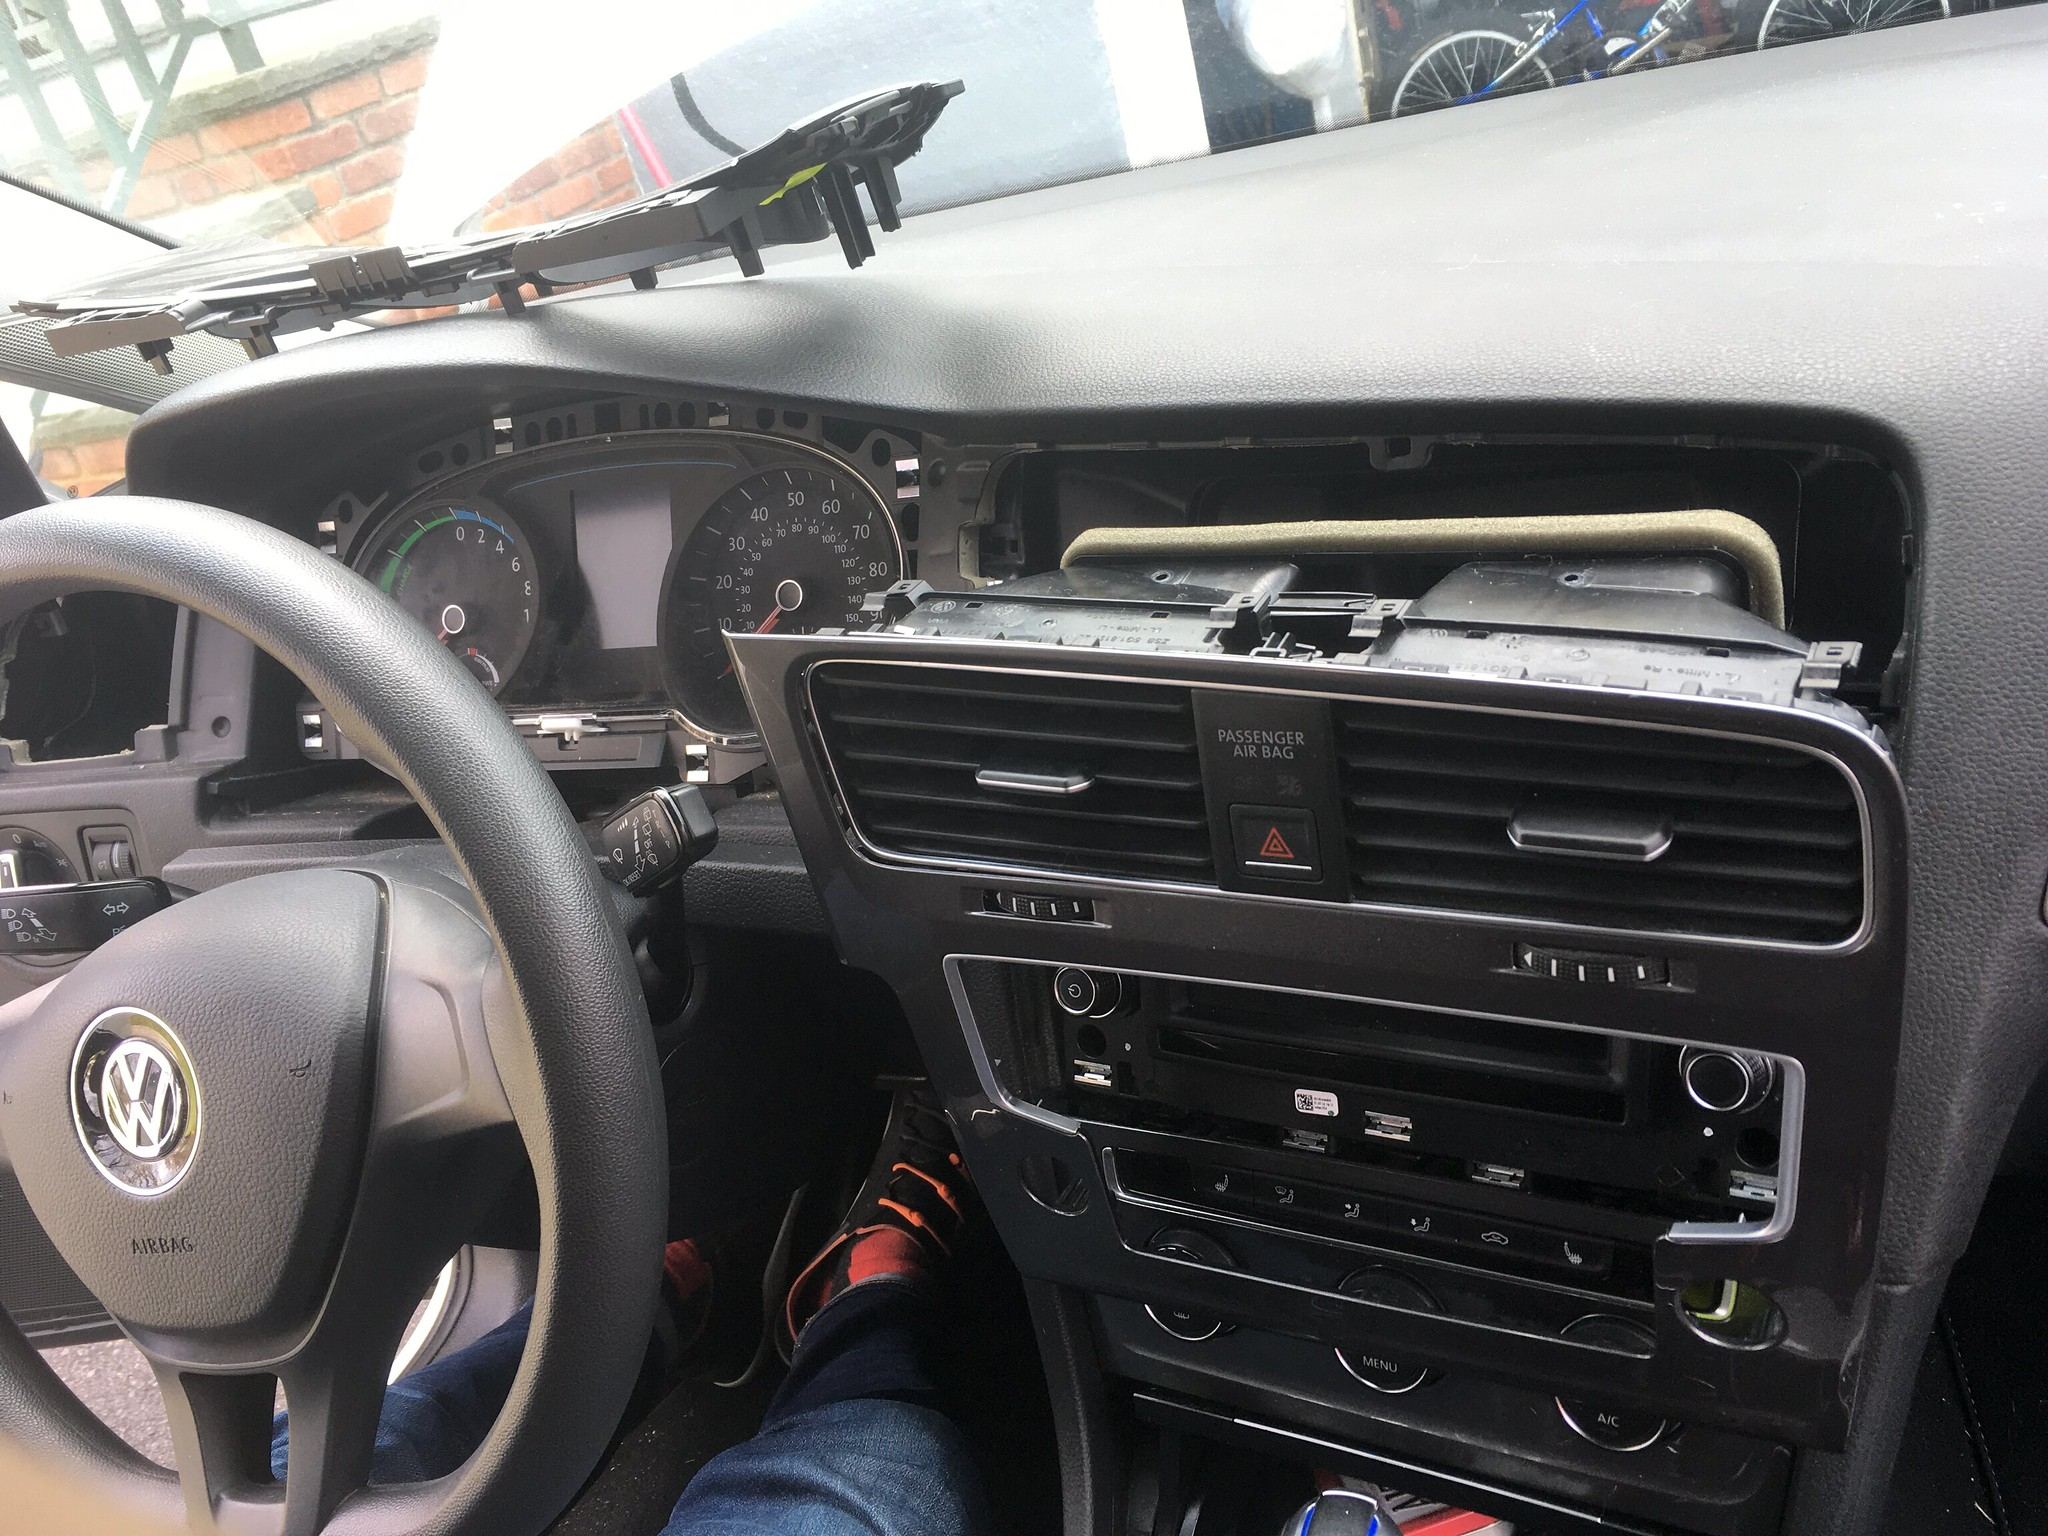 Disassembling dashboard to remove Car-Net